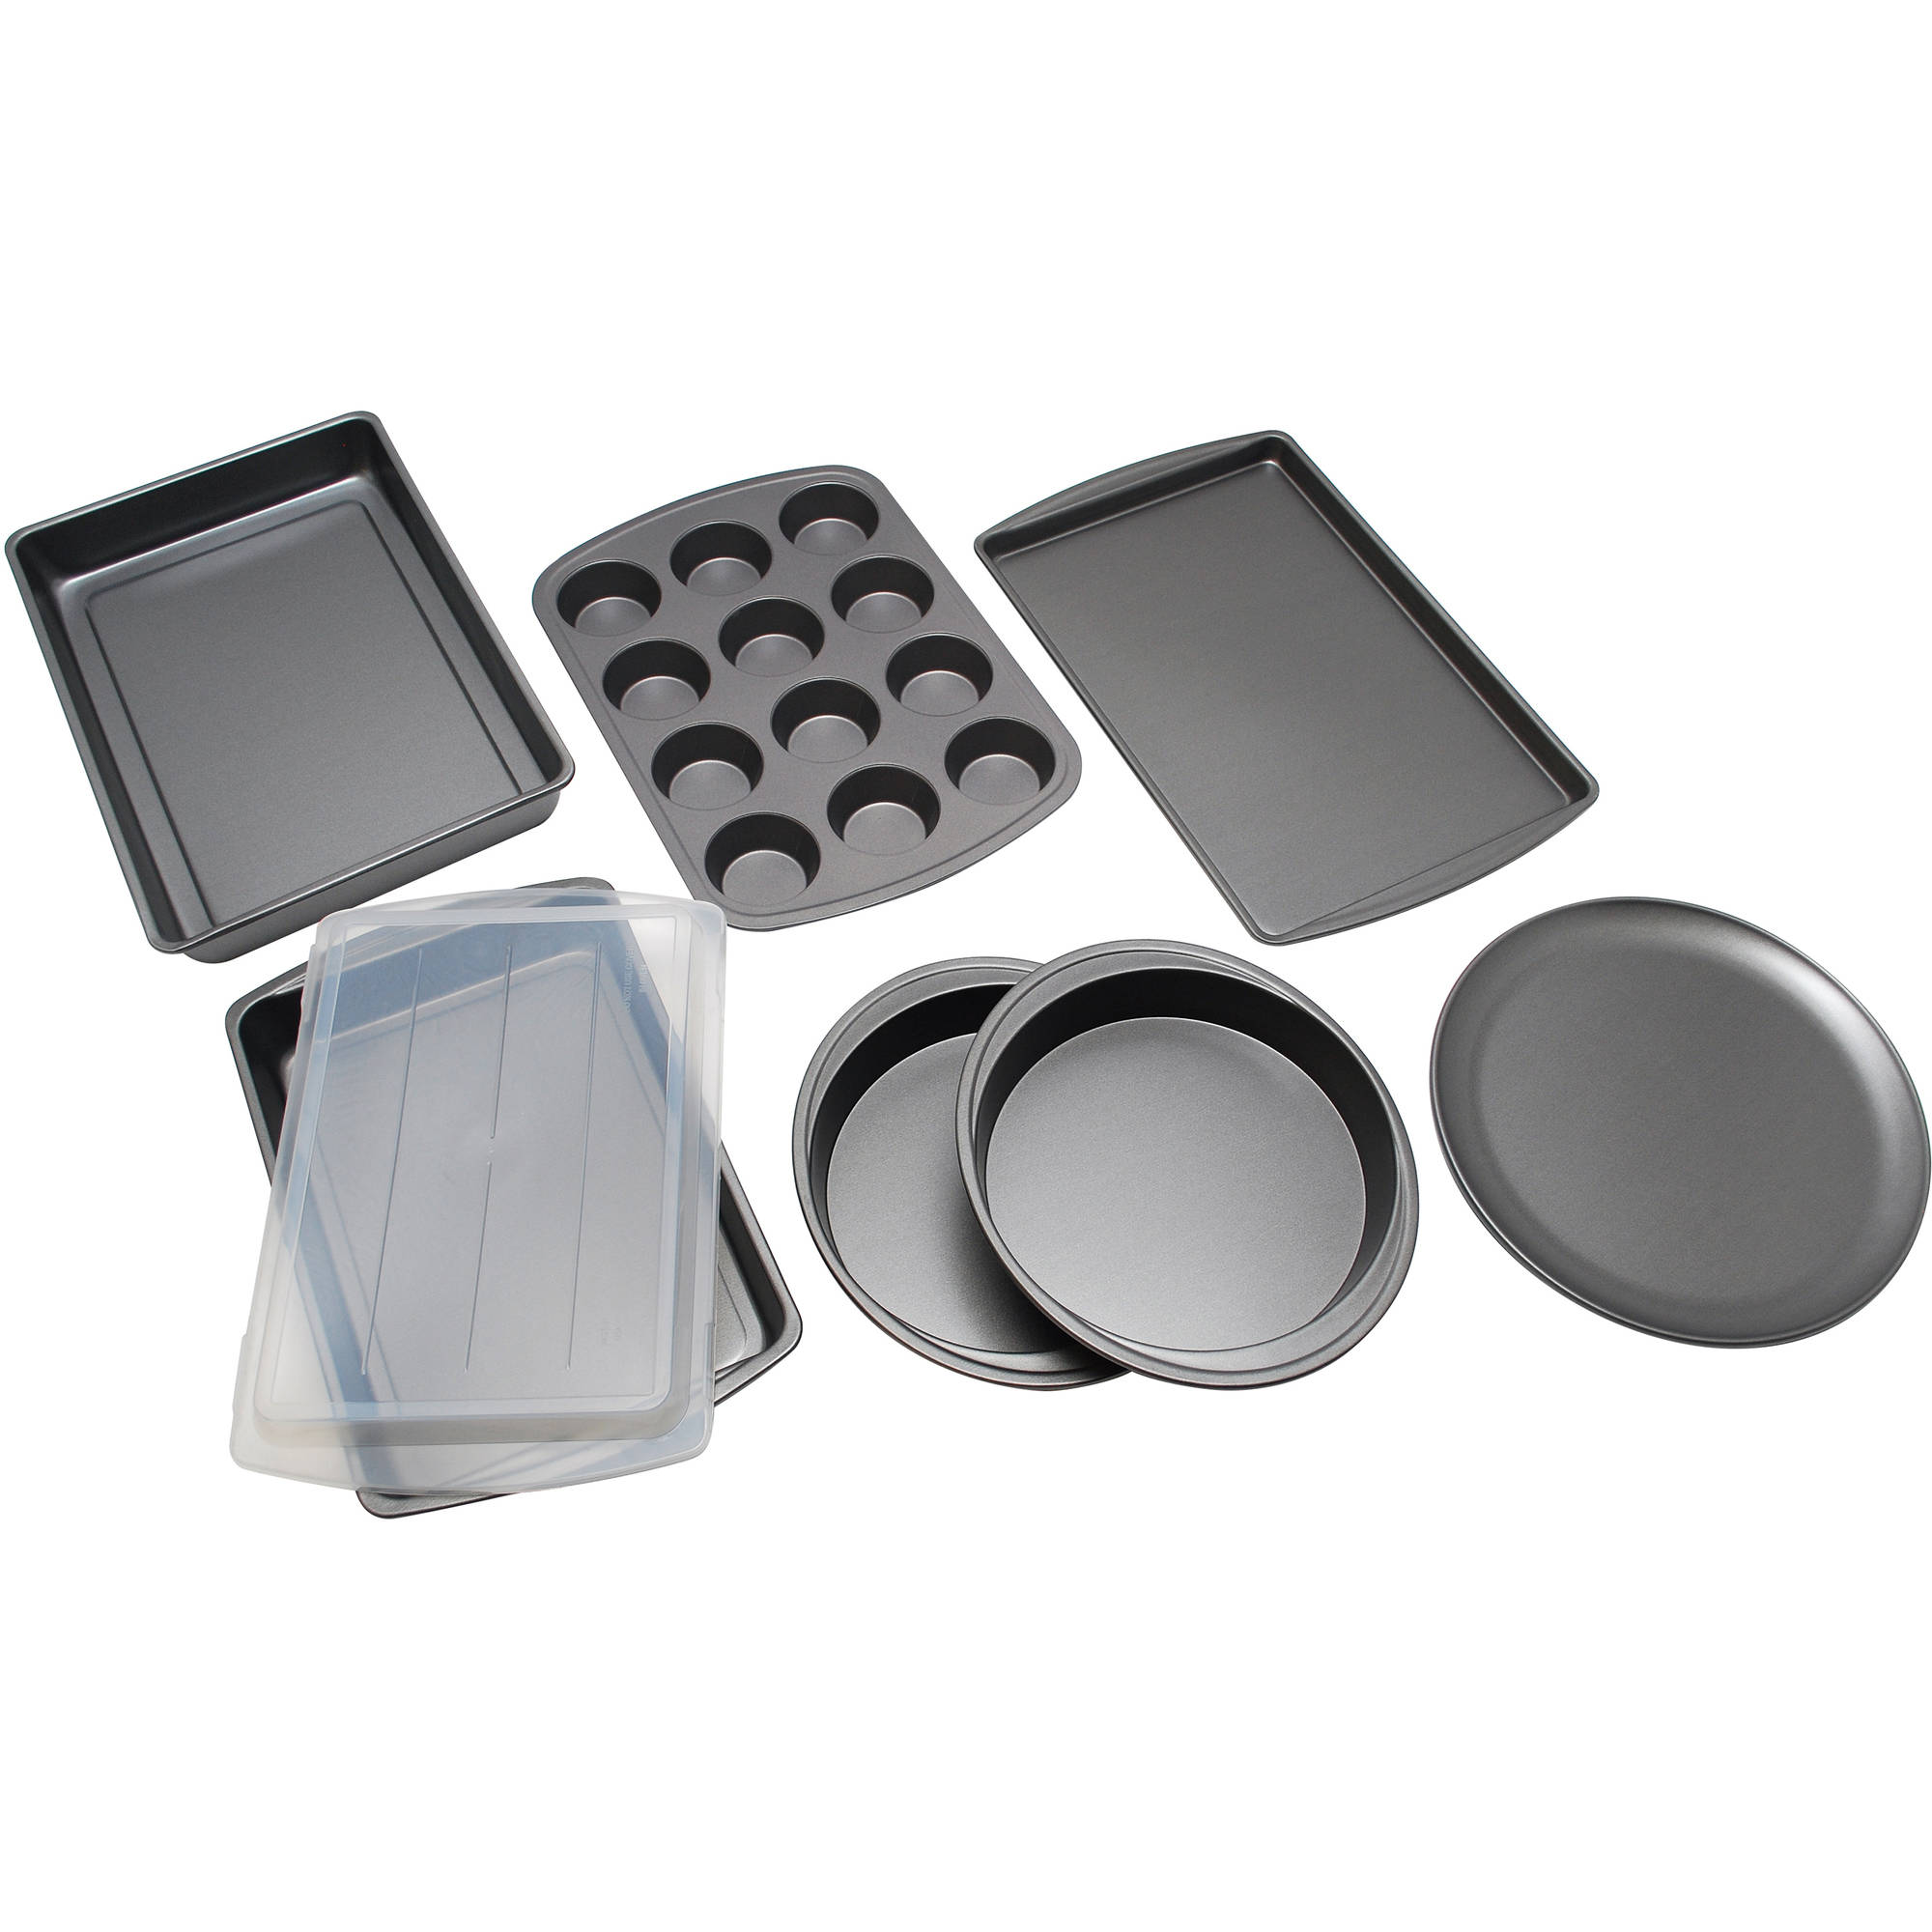 Mainstays 8 - Piece Bakeware Basics Set, Grey